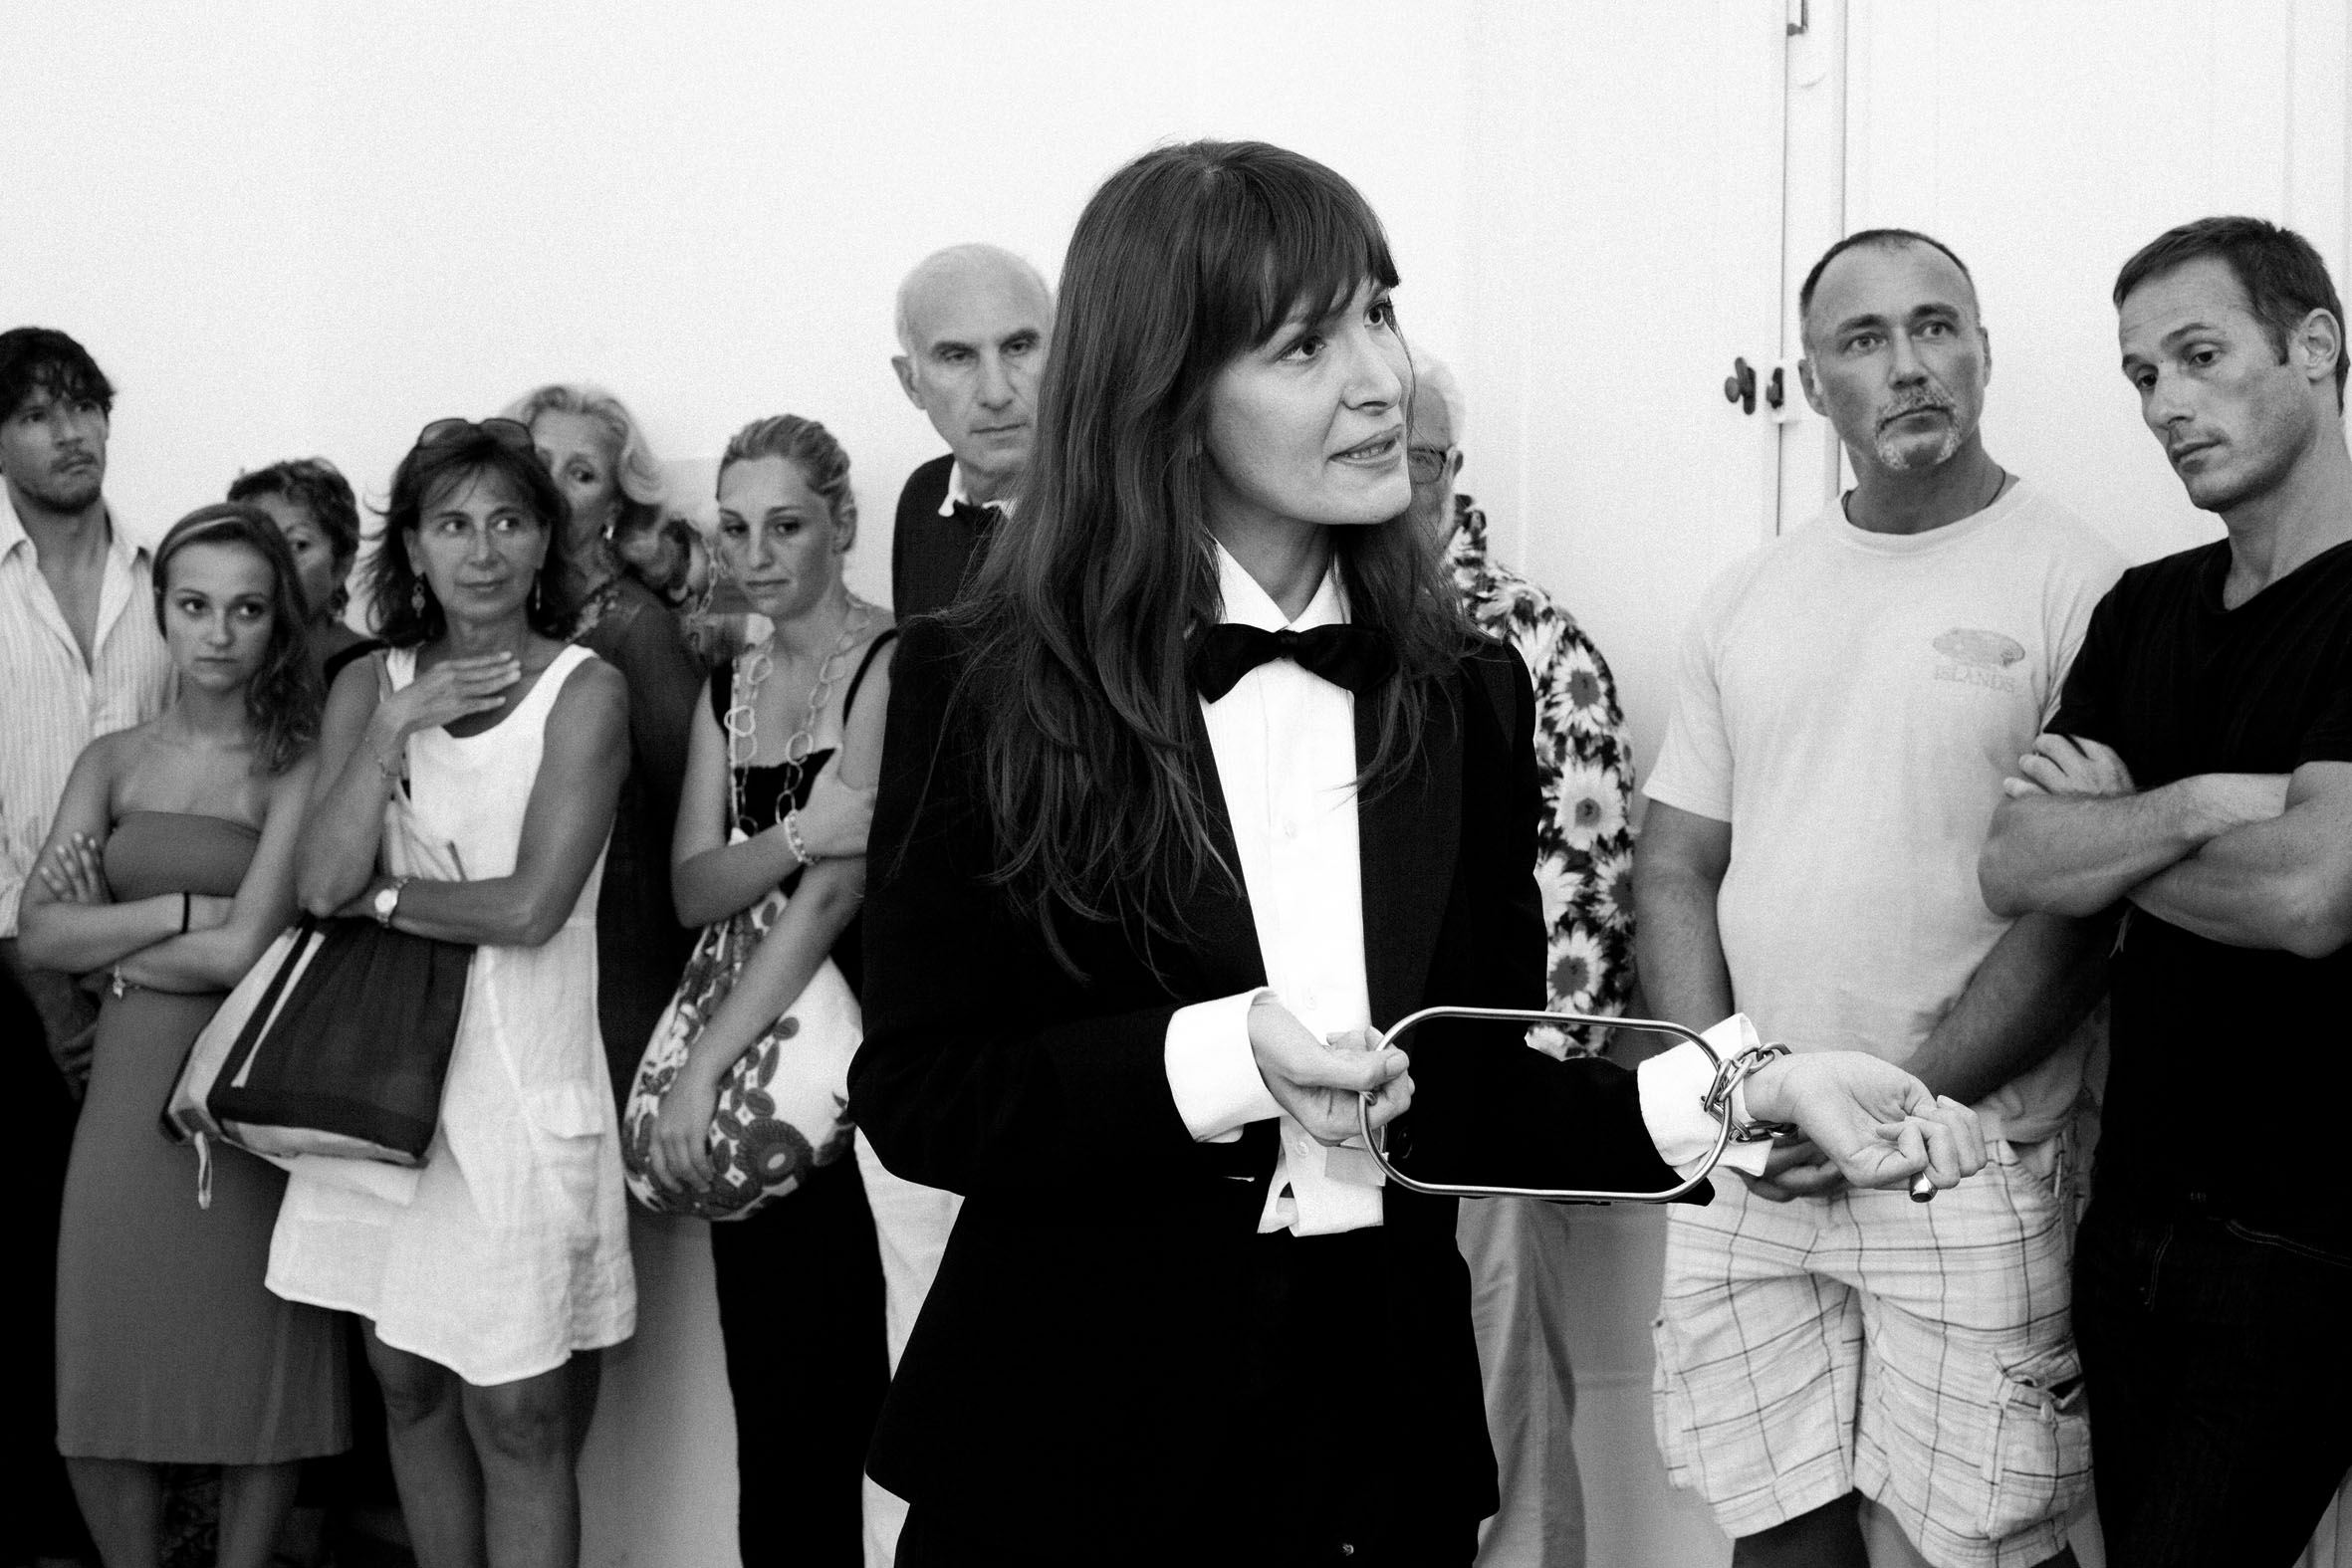 Chiara Fumai con Harry Houdini, Free like the speech of a Socialist, live performance, 15 agosto 2011. Ph. Matthew Stone